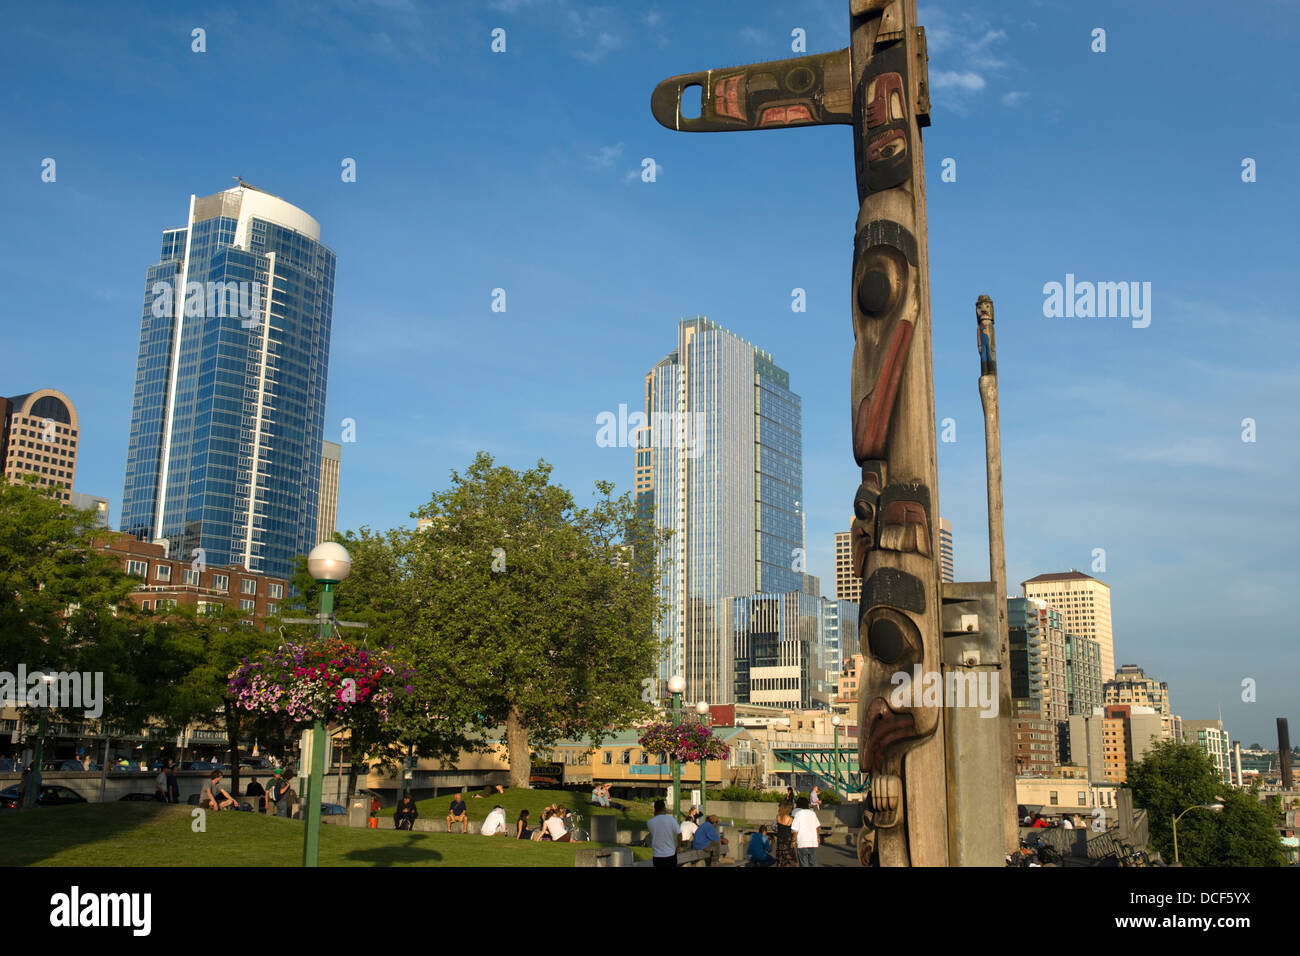 CEDAR TOTEM POLE VICTOR STEINBRUECK PARK ELLOIT BAY DOWNTOWN SEATTLE WASHINGTON STATE USA - Stock Image